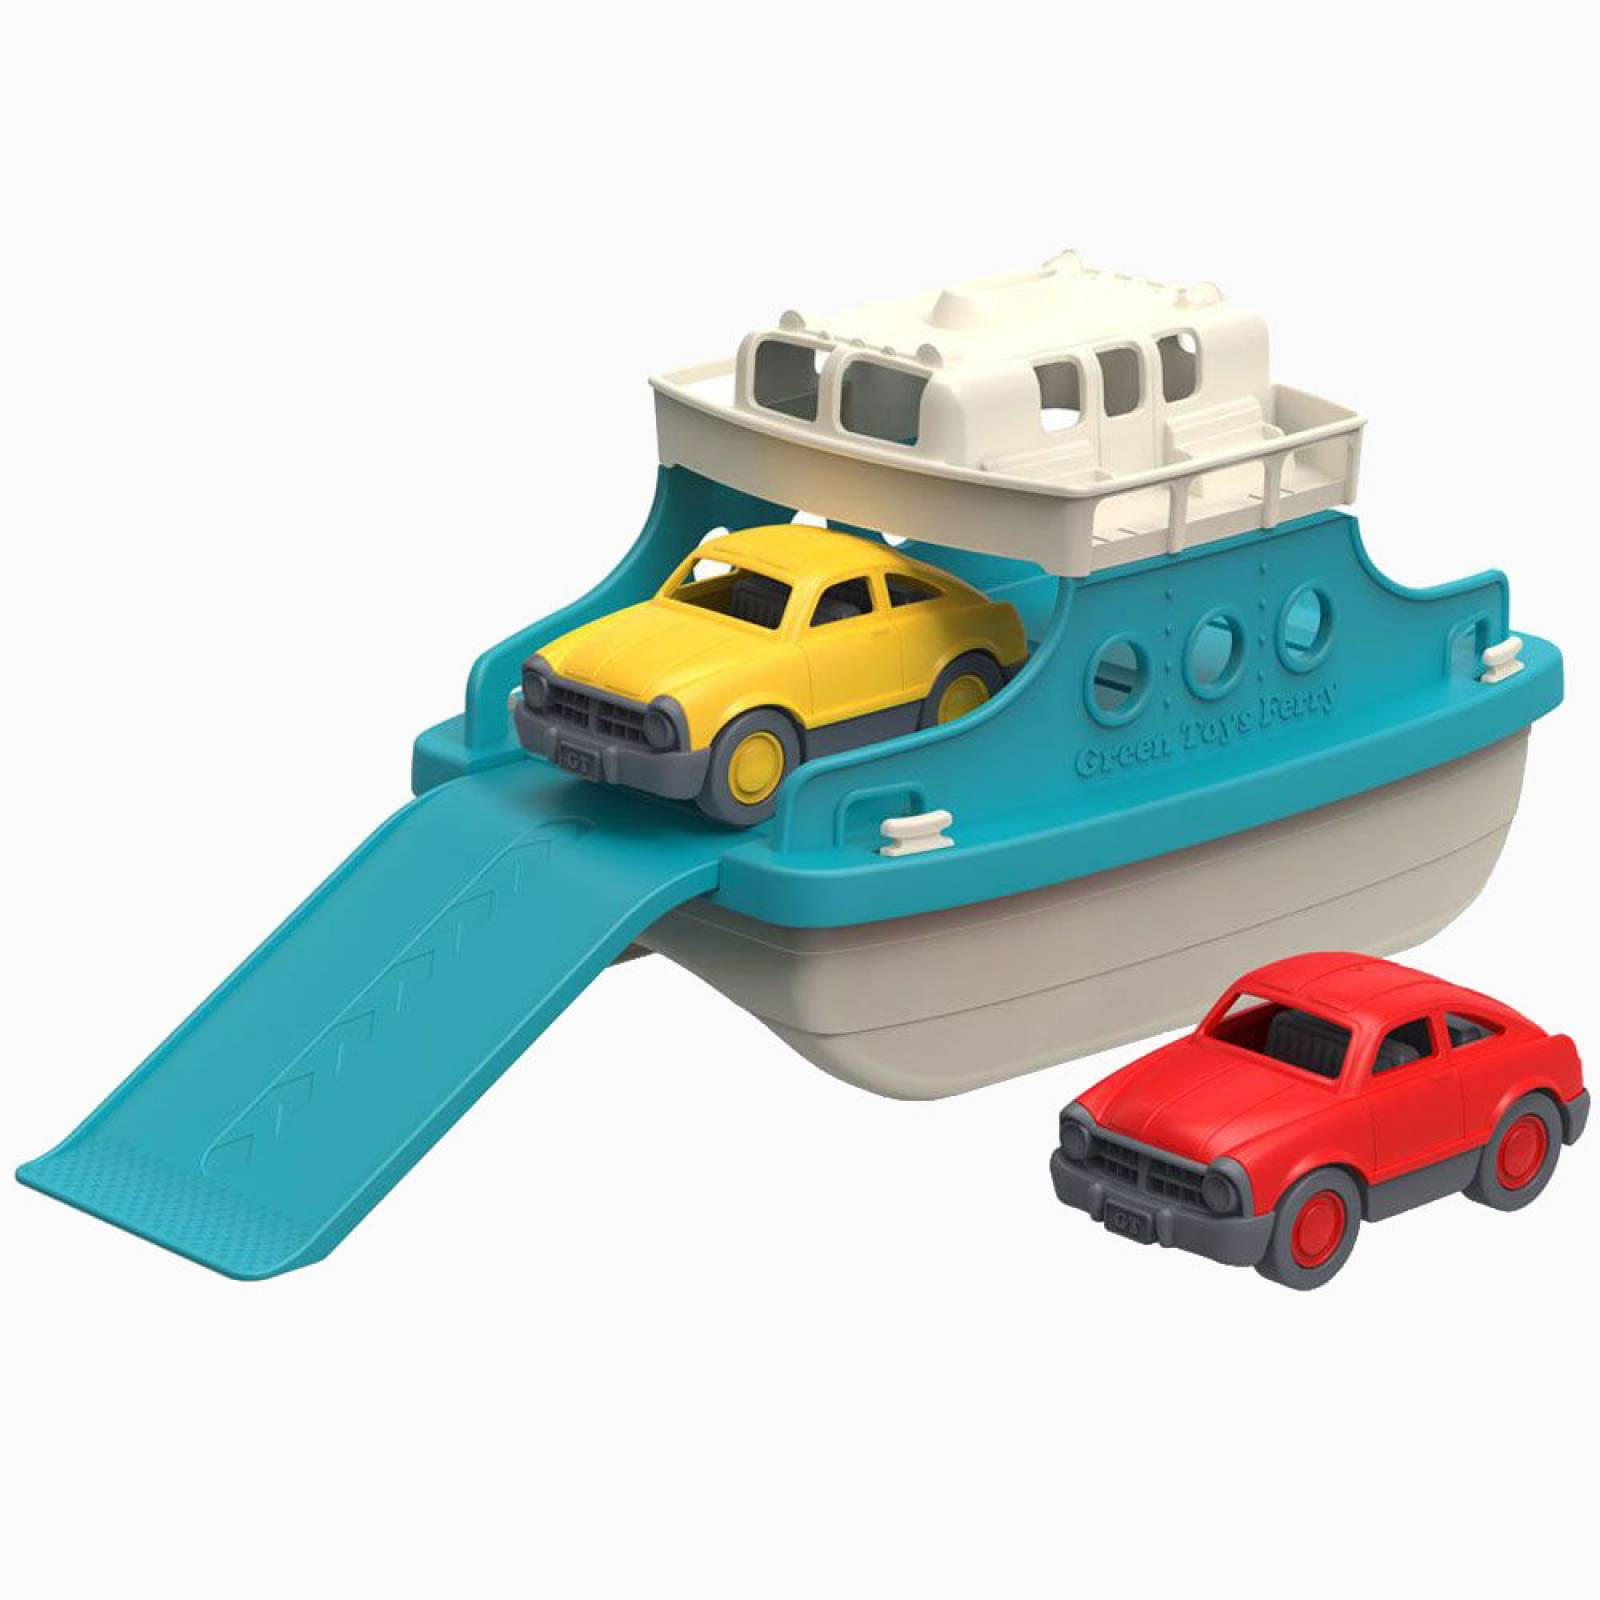 Blue Ferry Boat With Cars Toy By Green Toys 3+